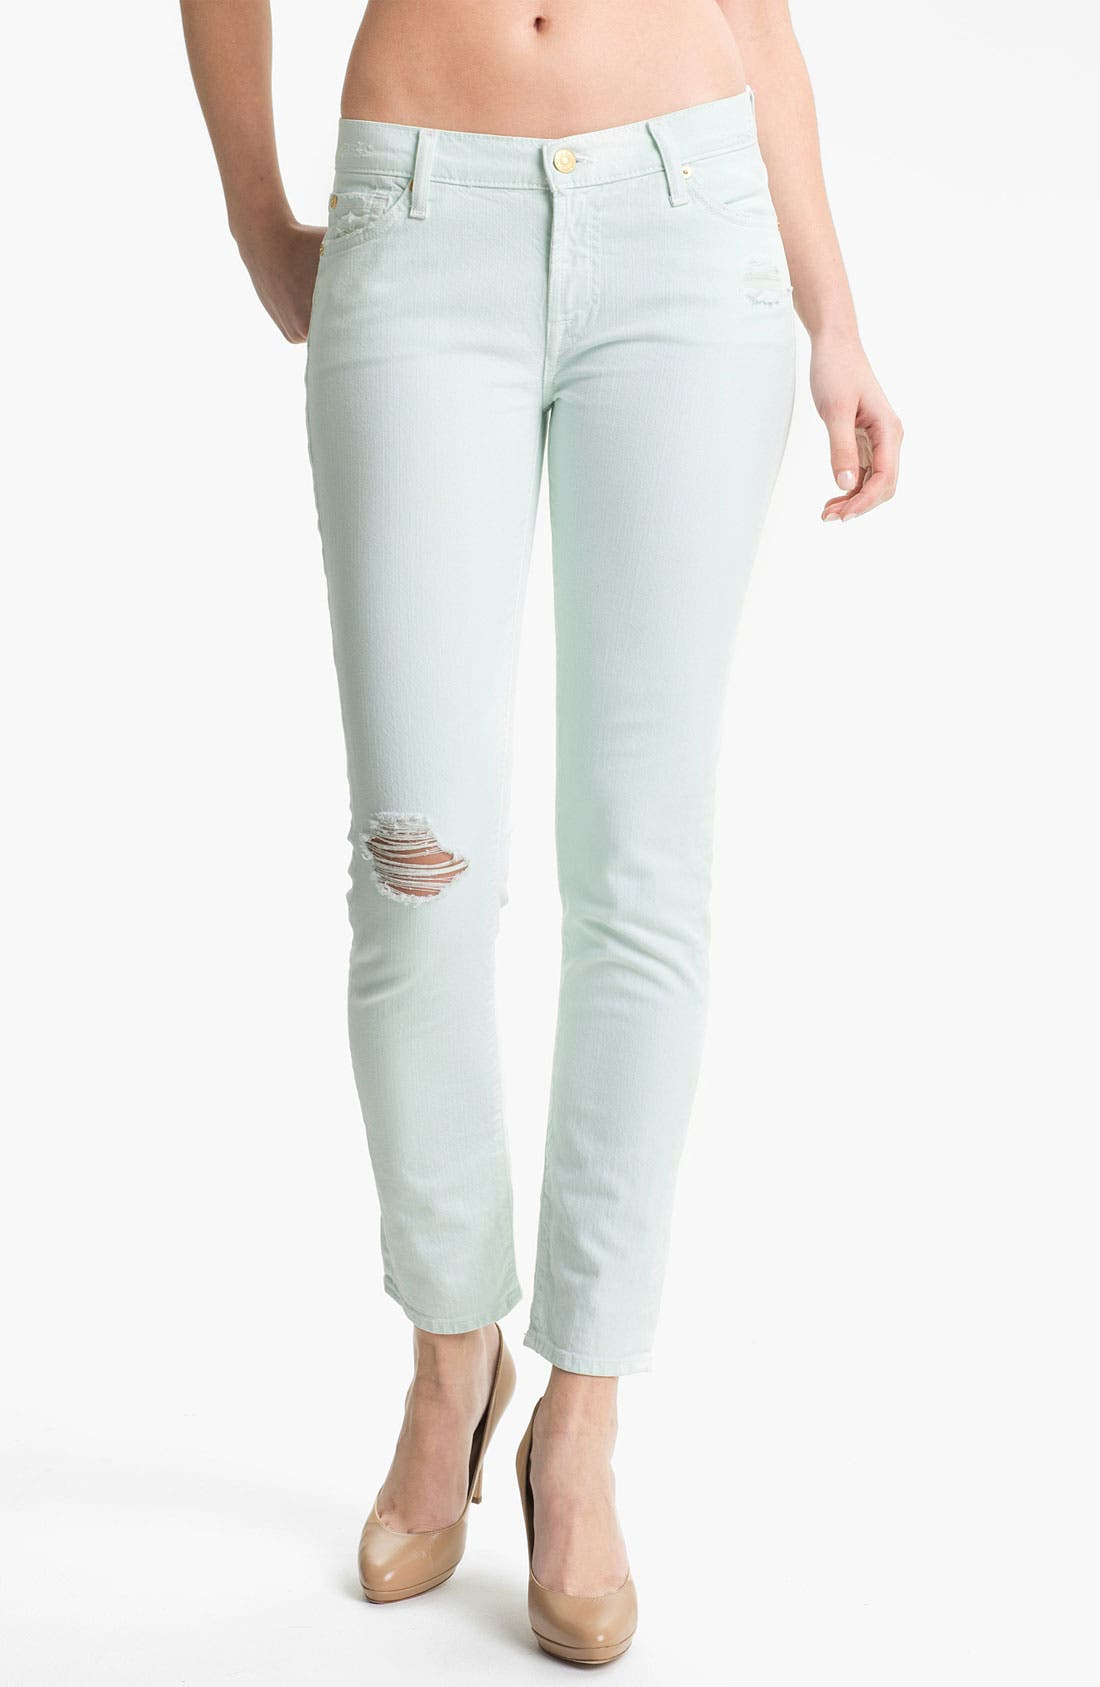 Alternate Image 1 Selected - 7 For All Mankind® 'The Slim Cigarette' Stretch Jeans (Aqua Destroyed)